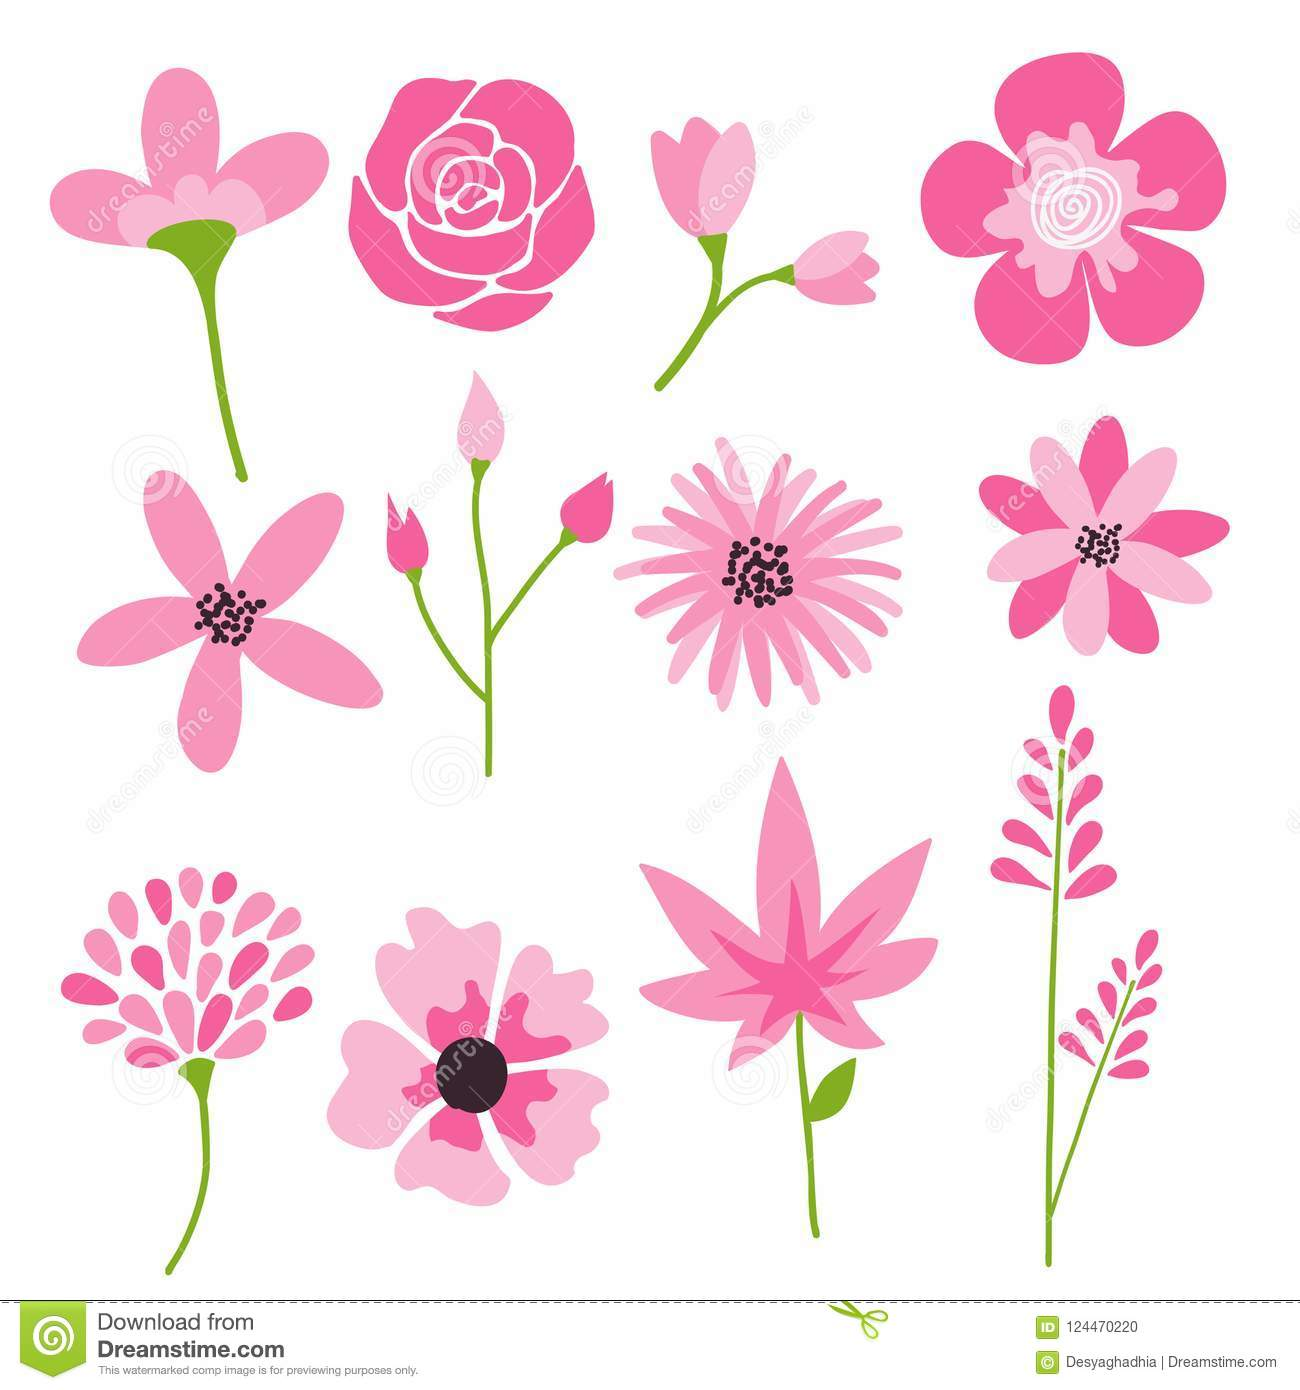 Flower icons set, vector collection of floral elements.